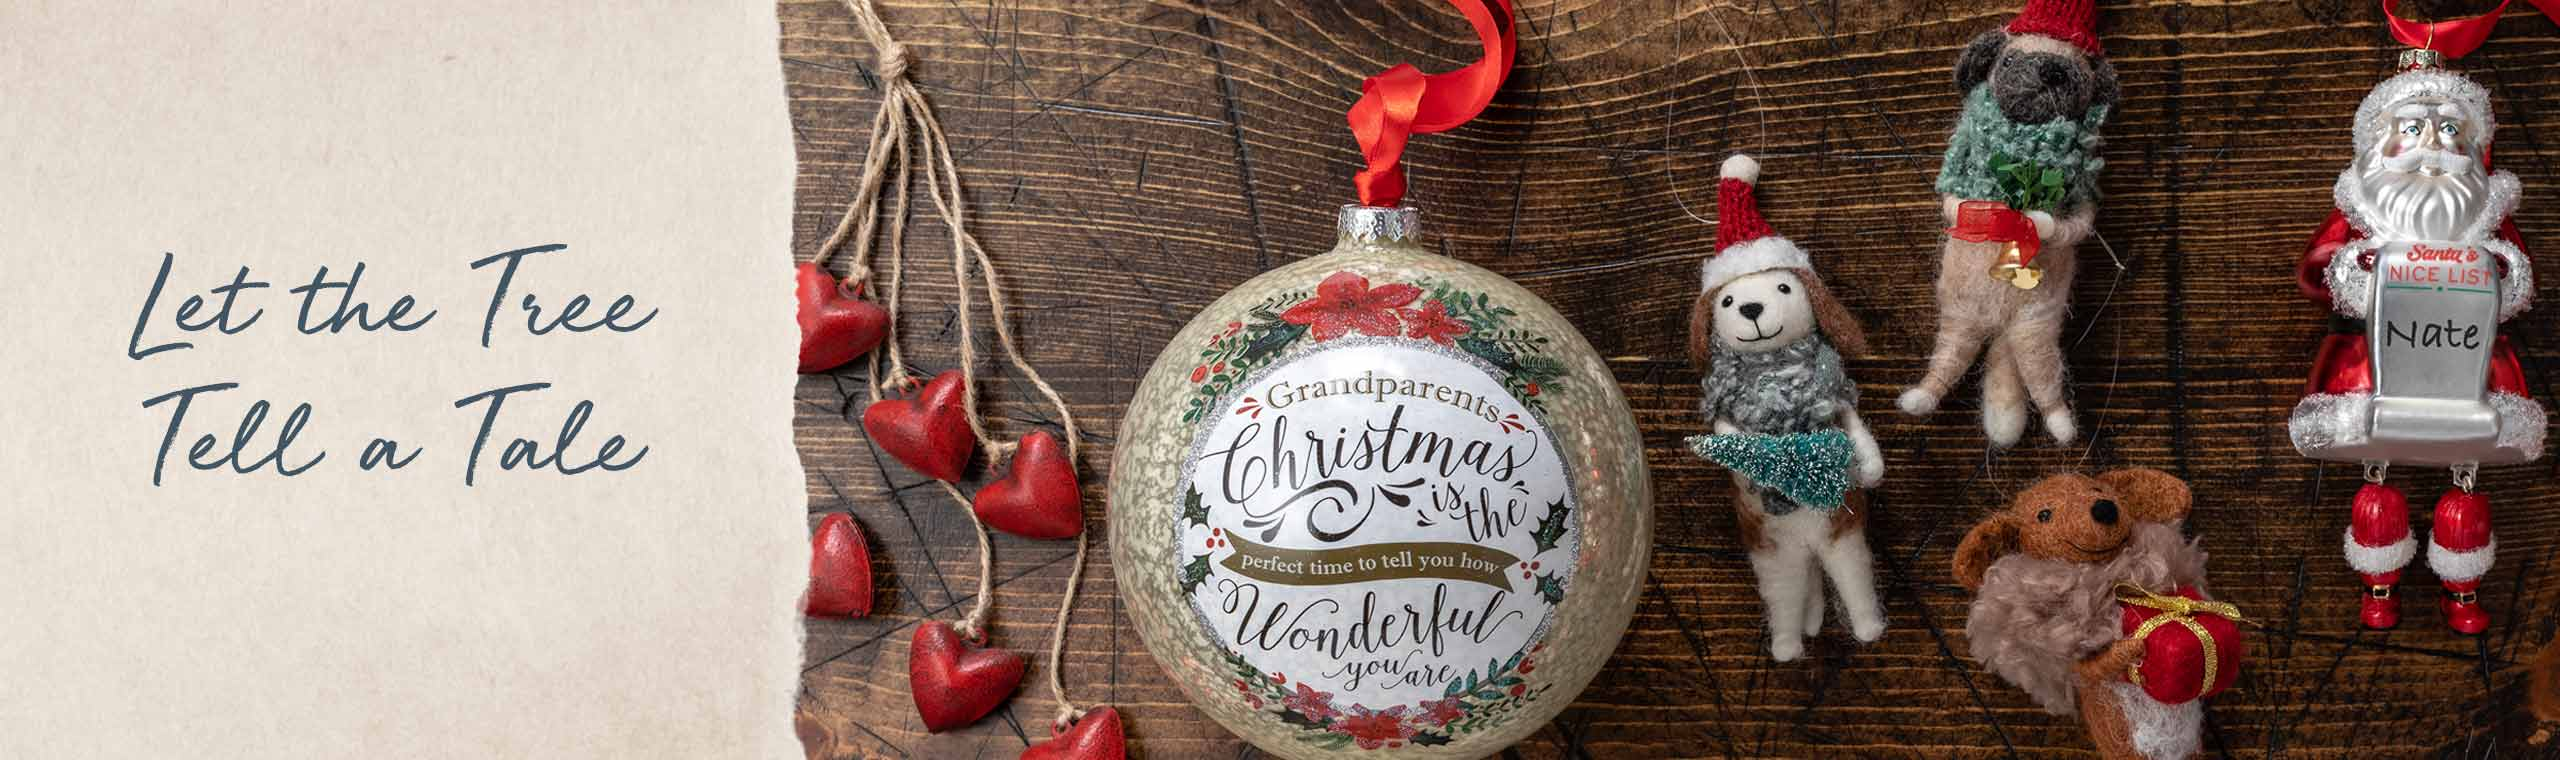 Let the tree tell a tale. Christmas ornaments lying on a wood table. Red hearts on strings. Large bulb with the words Grandparents Christmas is the perfect time to tell you how wonderful you are. Fuzzy dogs holding bells and a christmas tree.